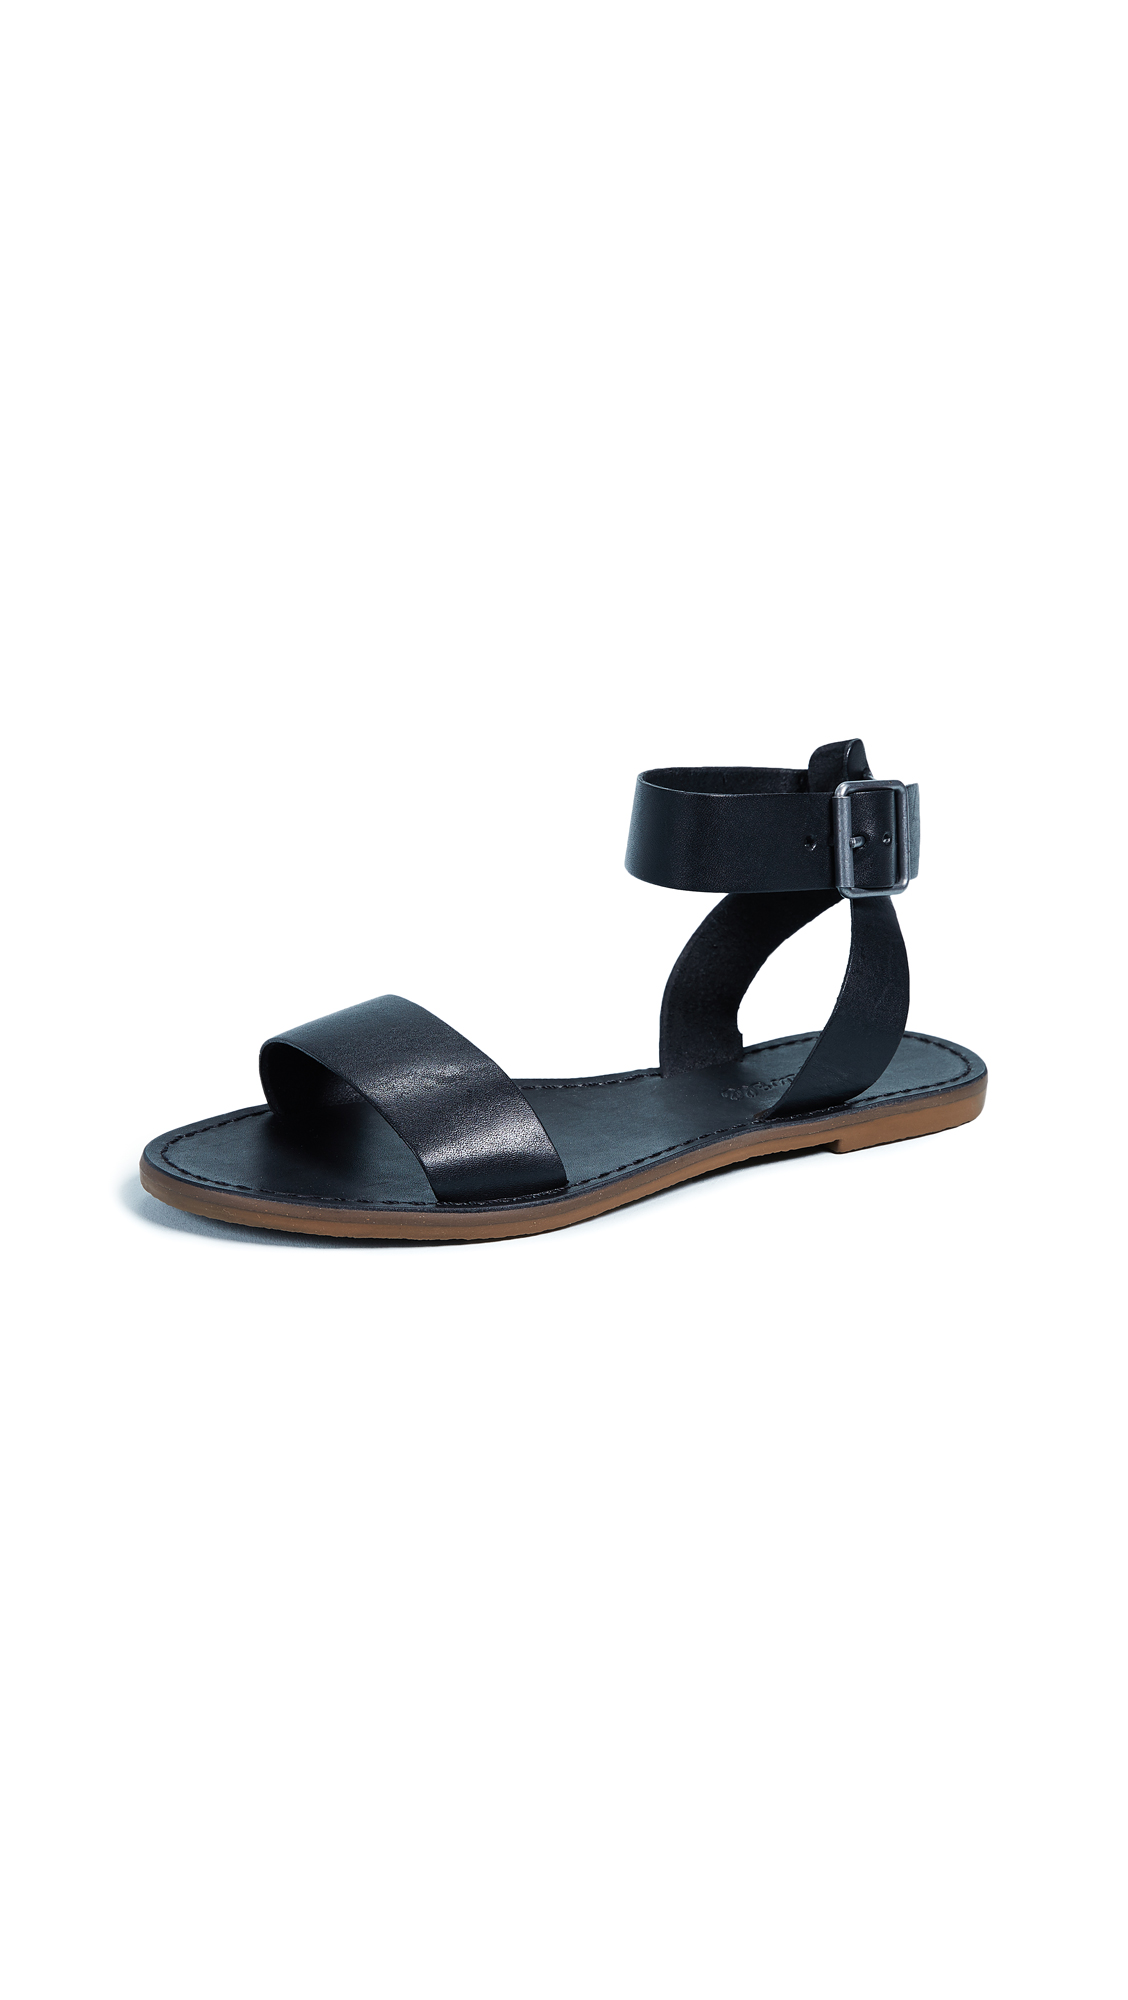 Madewell The Boardwalk Ankle-Strap Sandals - True Black